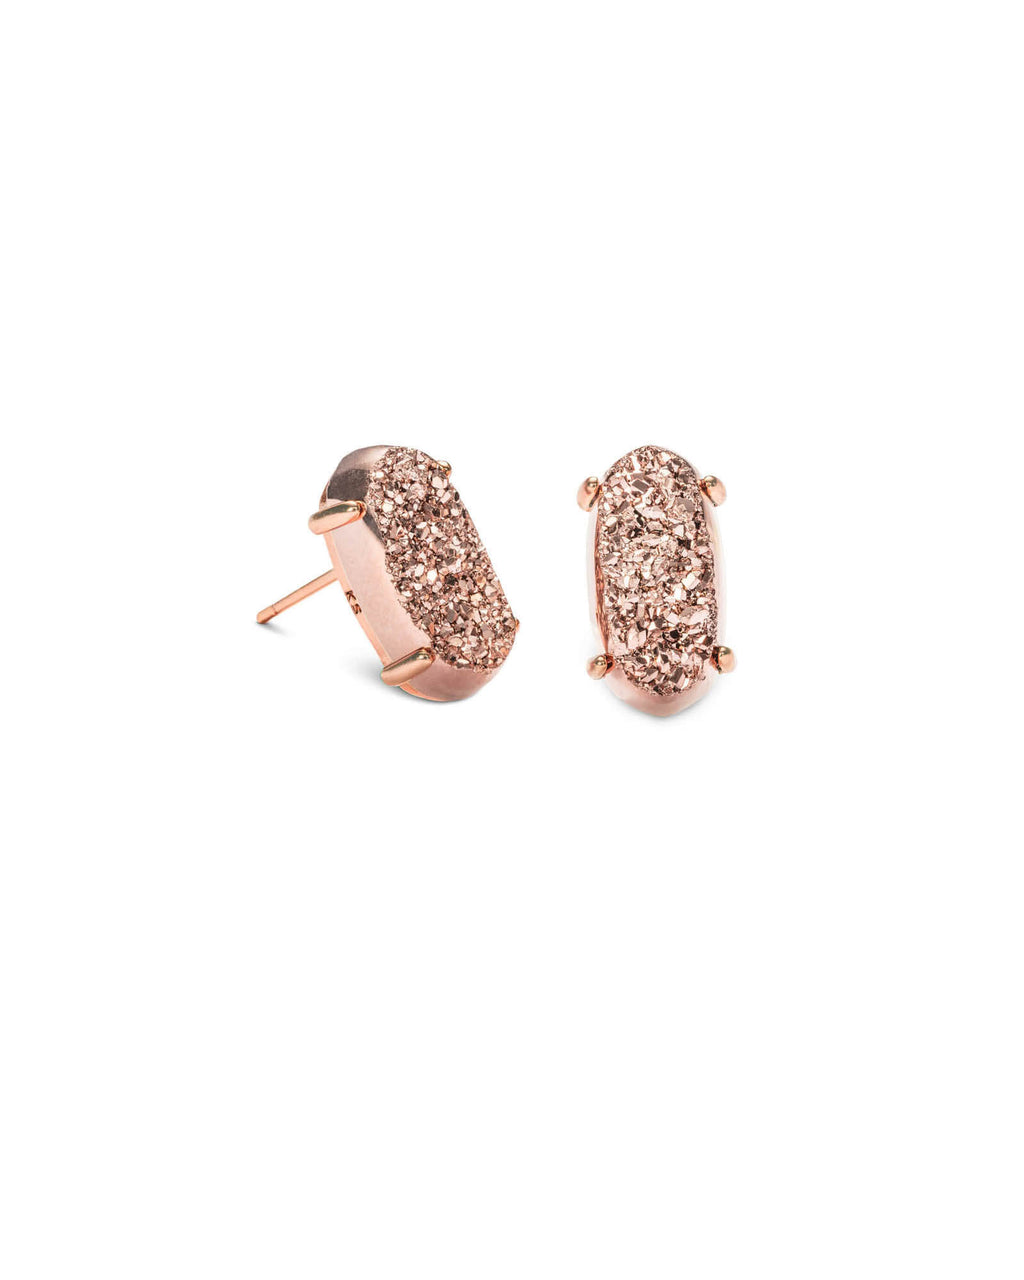 KENDRA SCOTT Betty Rose Gold Stud Earrings - Rose Gold Drusy